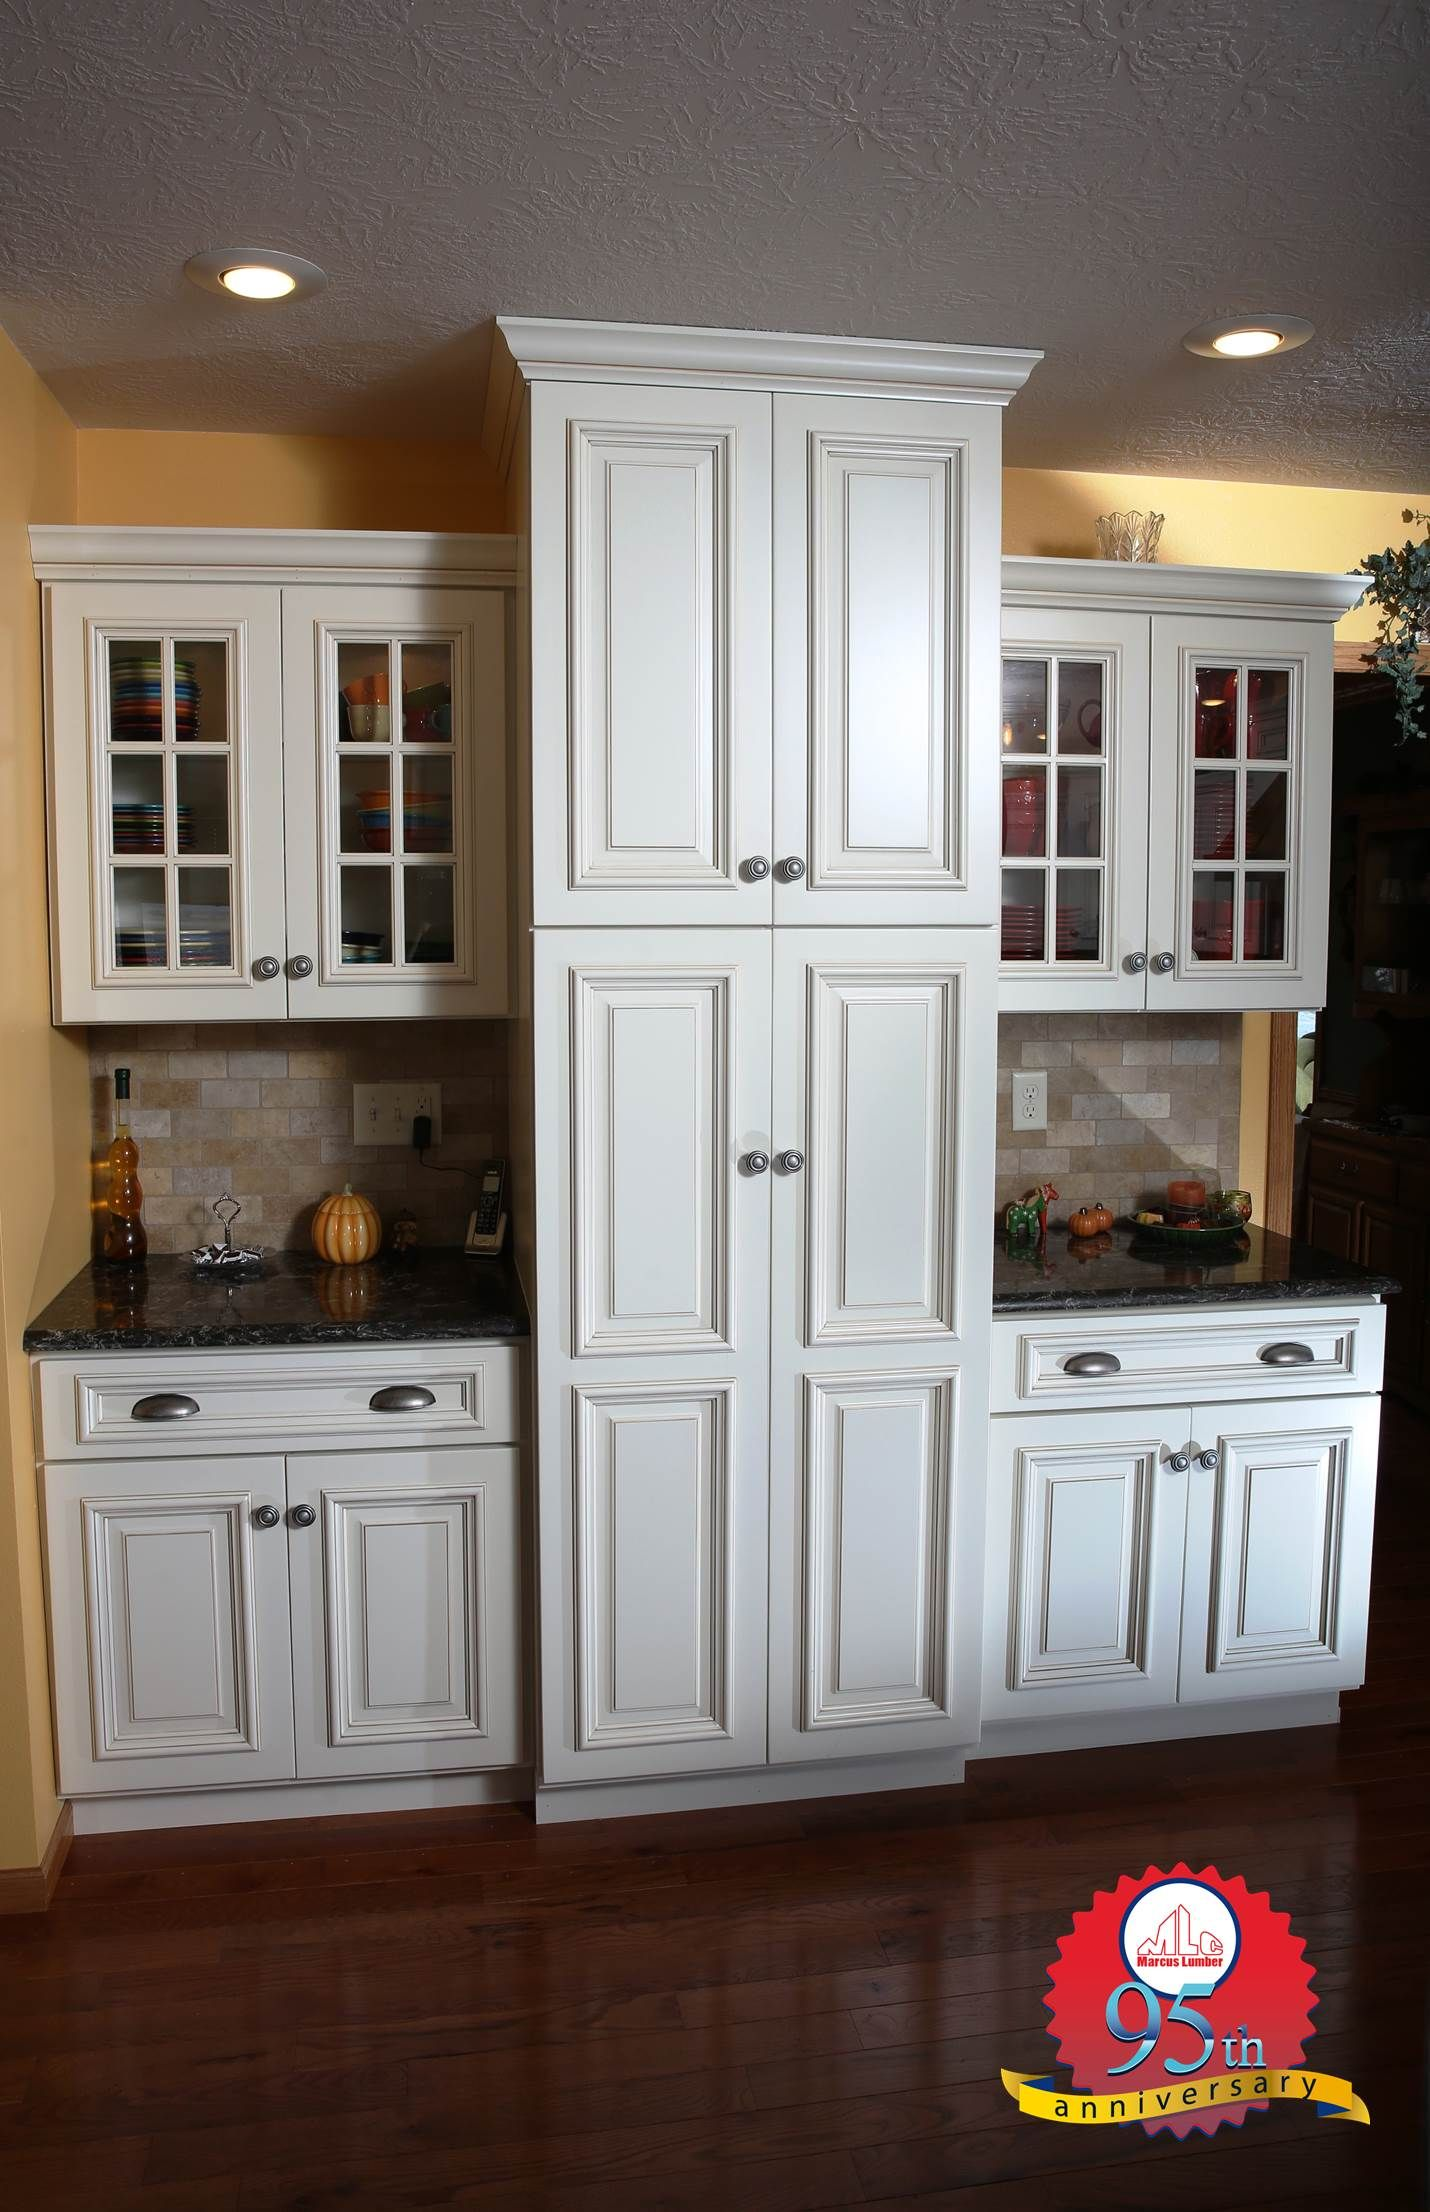 Eggshell Prefinished Brown Glazed Birch Wood Cabinets The Beautiful 6 Pane Cabinet Doors Add Detail And Character To These Cabinet Doors Cabinet Kitchen Wall